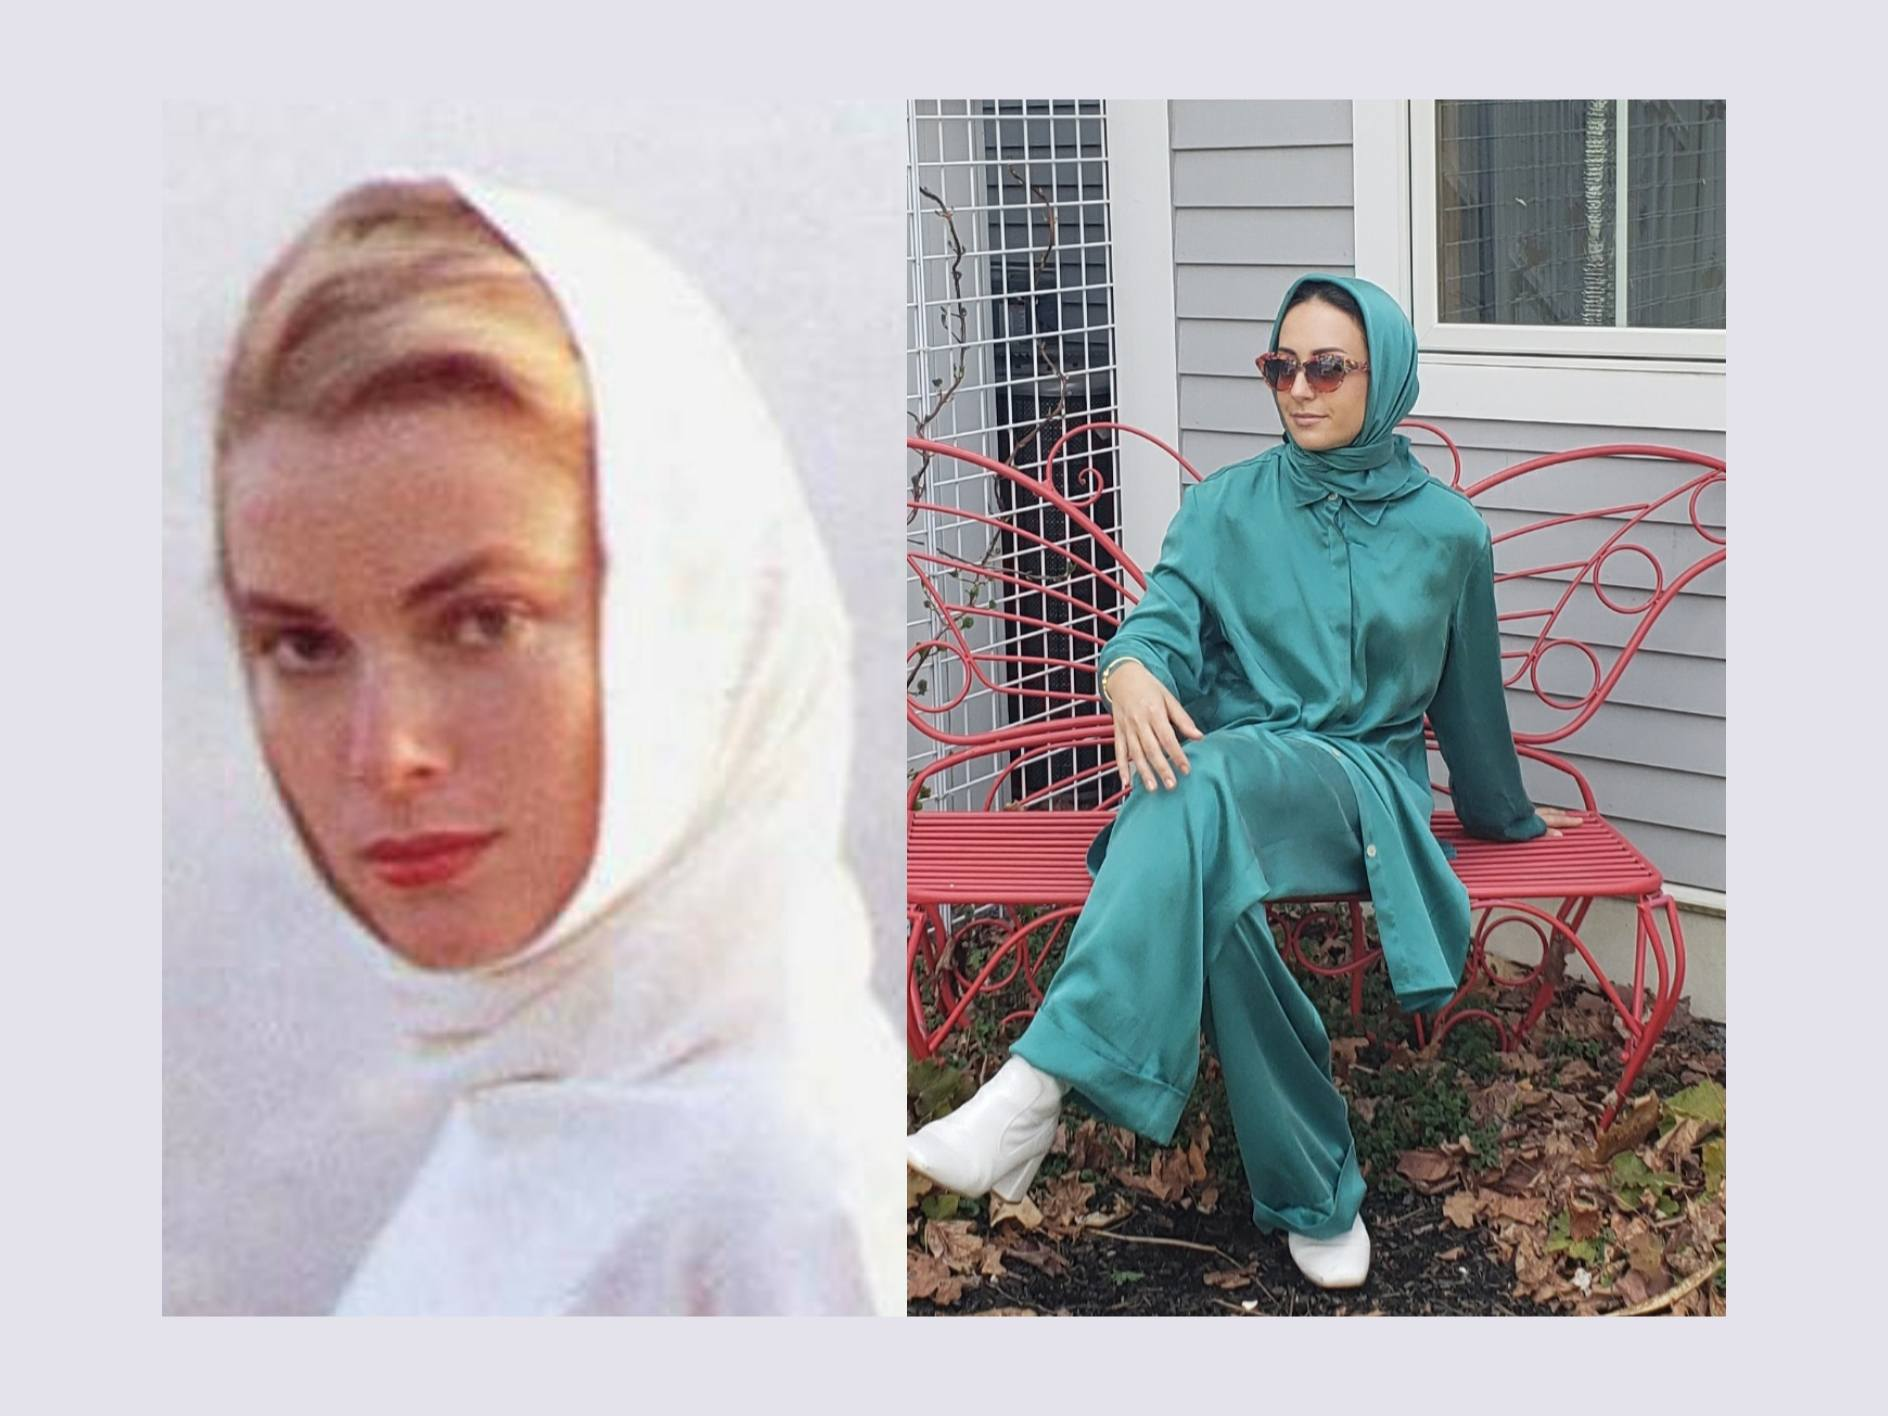 Grace Kelly fashion from the fifties. Fashion icon Grace Kelly in vintage silk headscarf. Hijabi woman in stylish modest outfit for women.